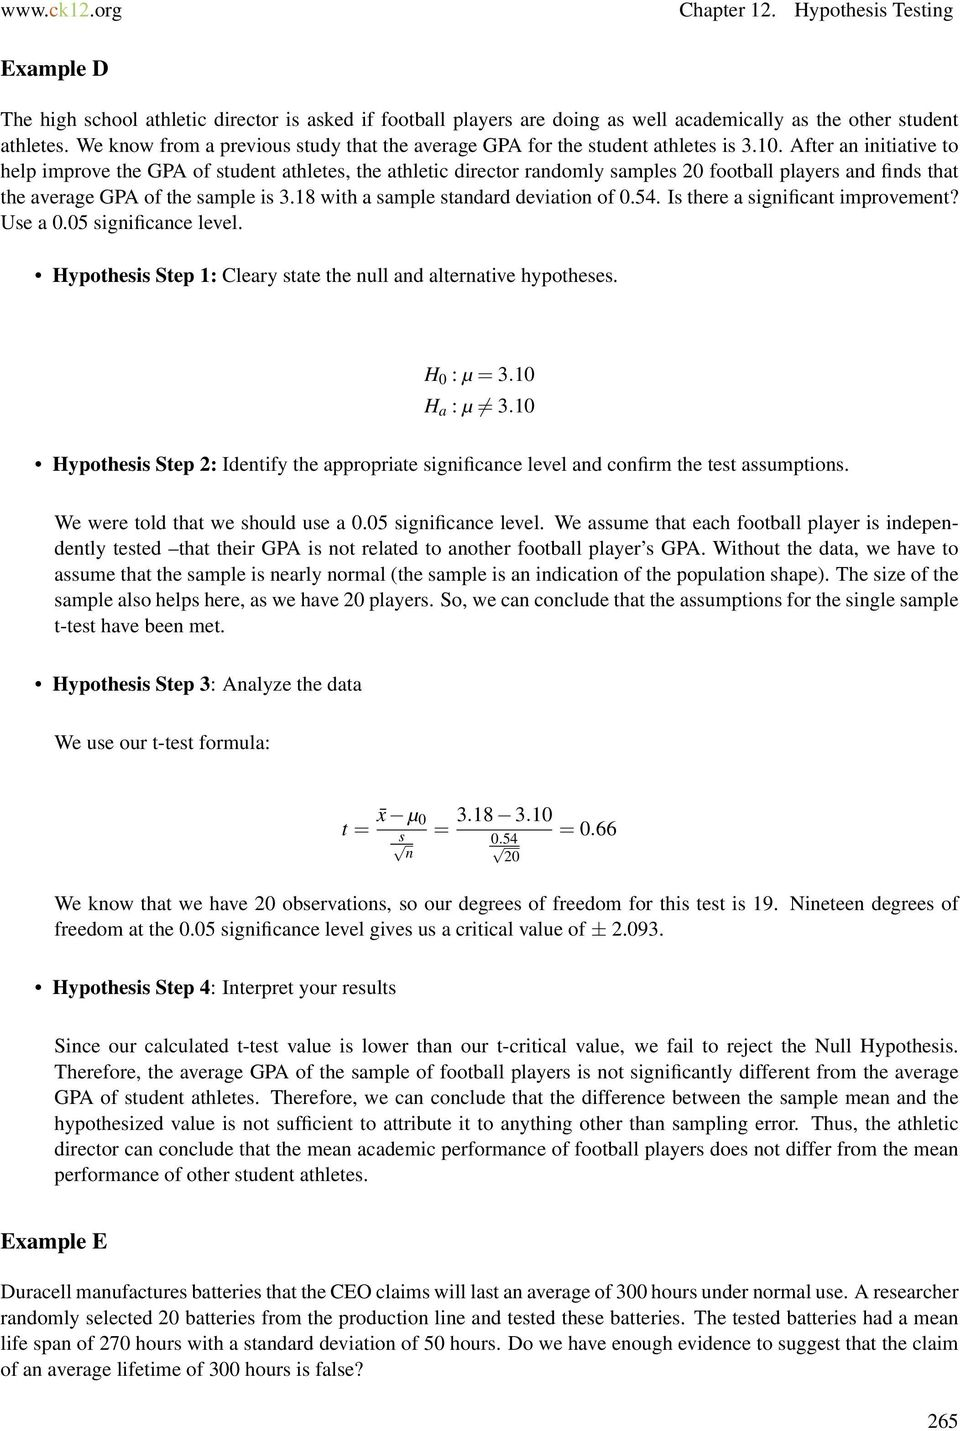 steps involved in hypothesis testing pdf